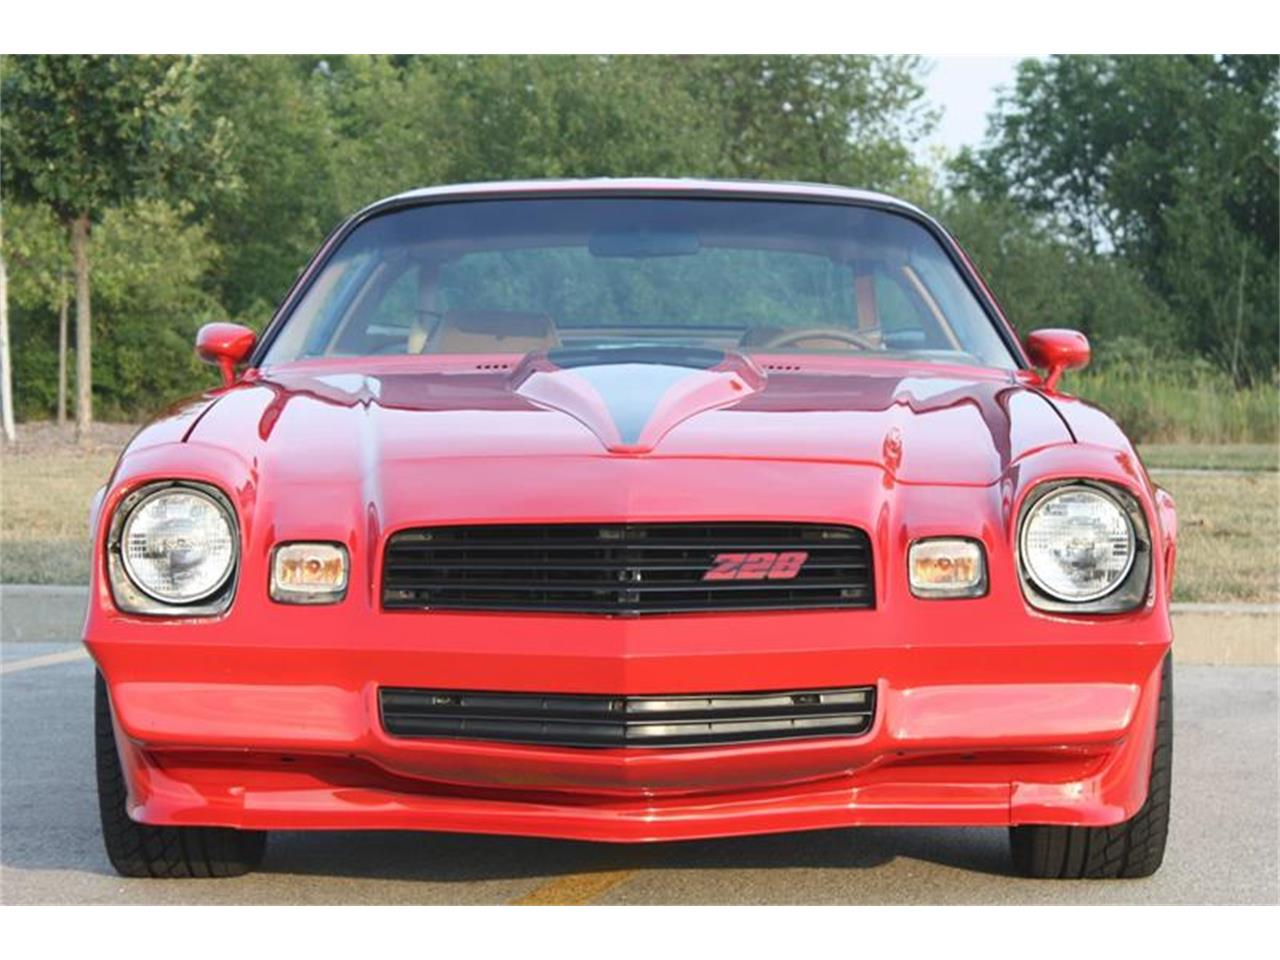 Large Picture of '80 Camaro - $27,500.00 Offered by Classic Car Guy - OWVH